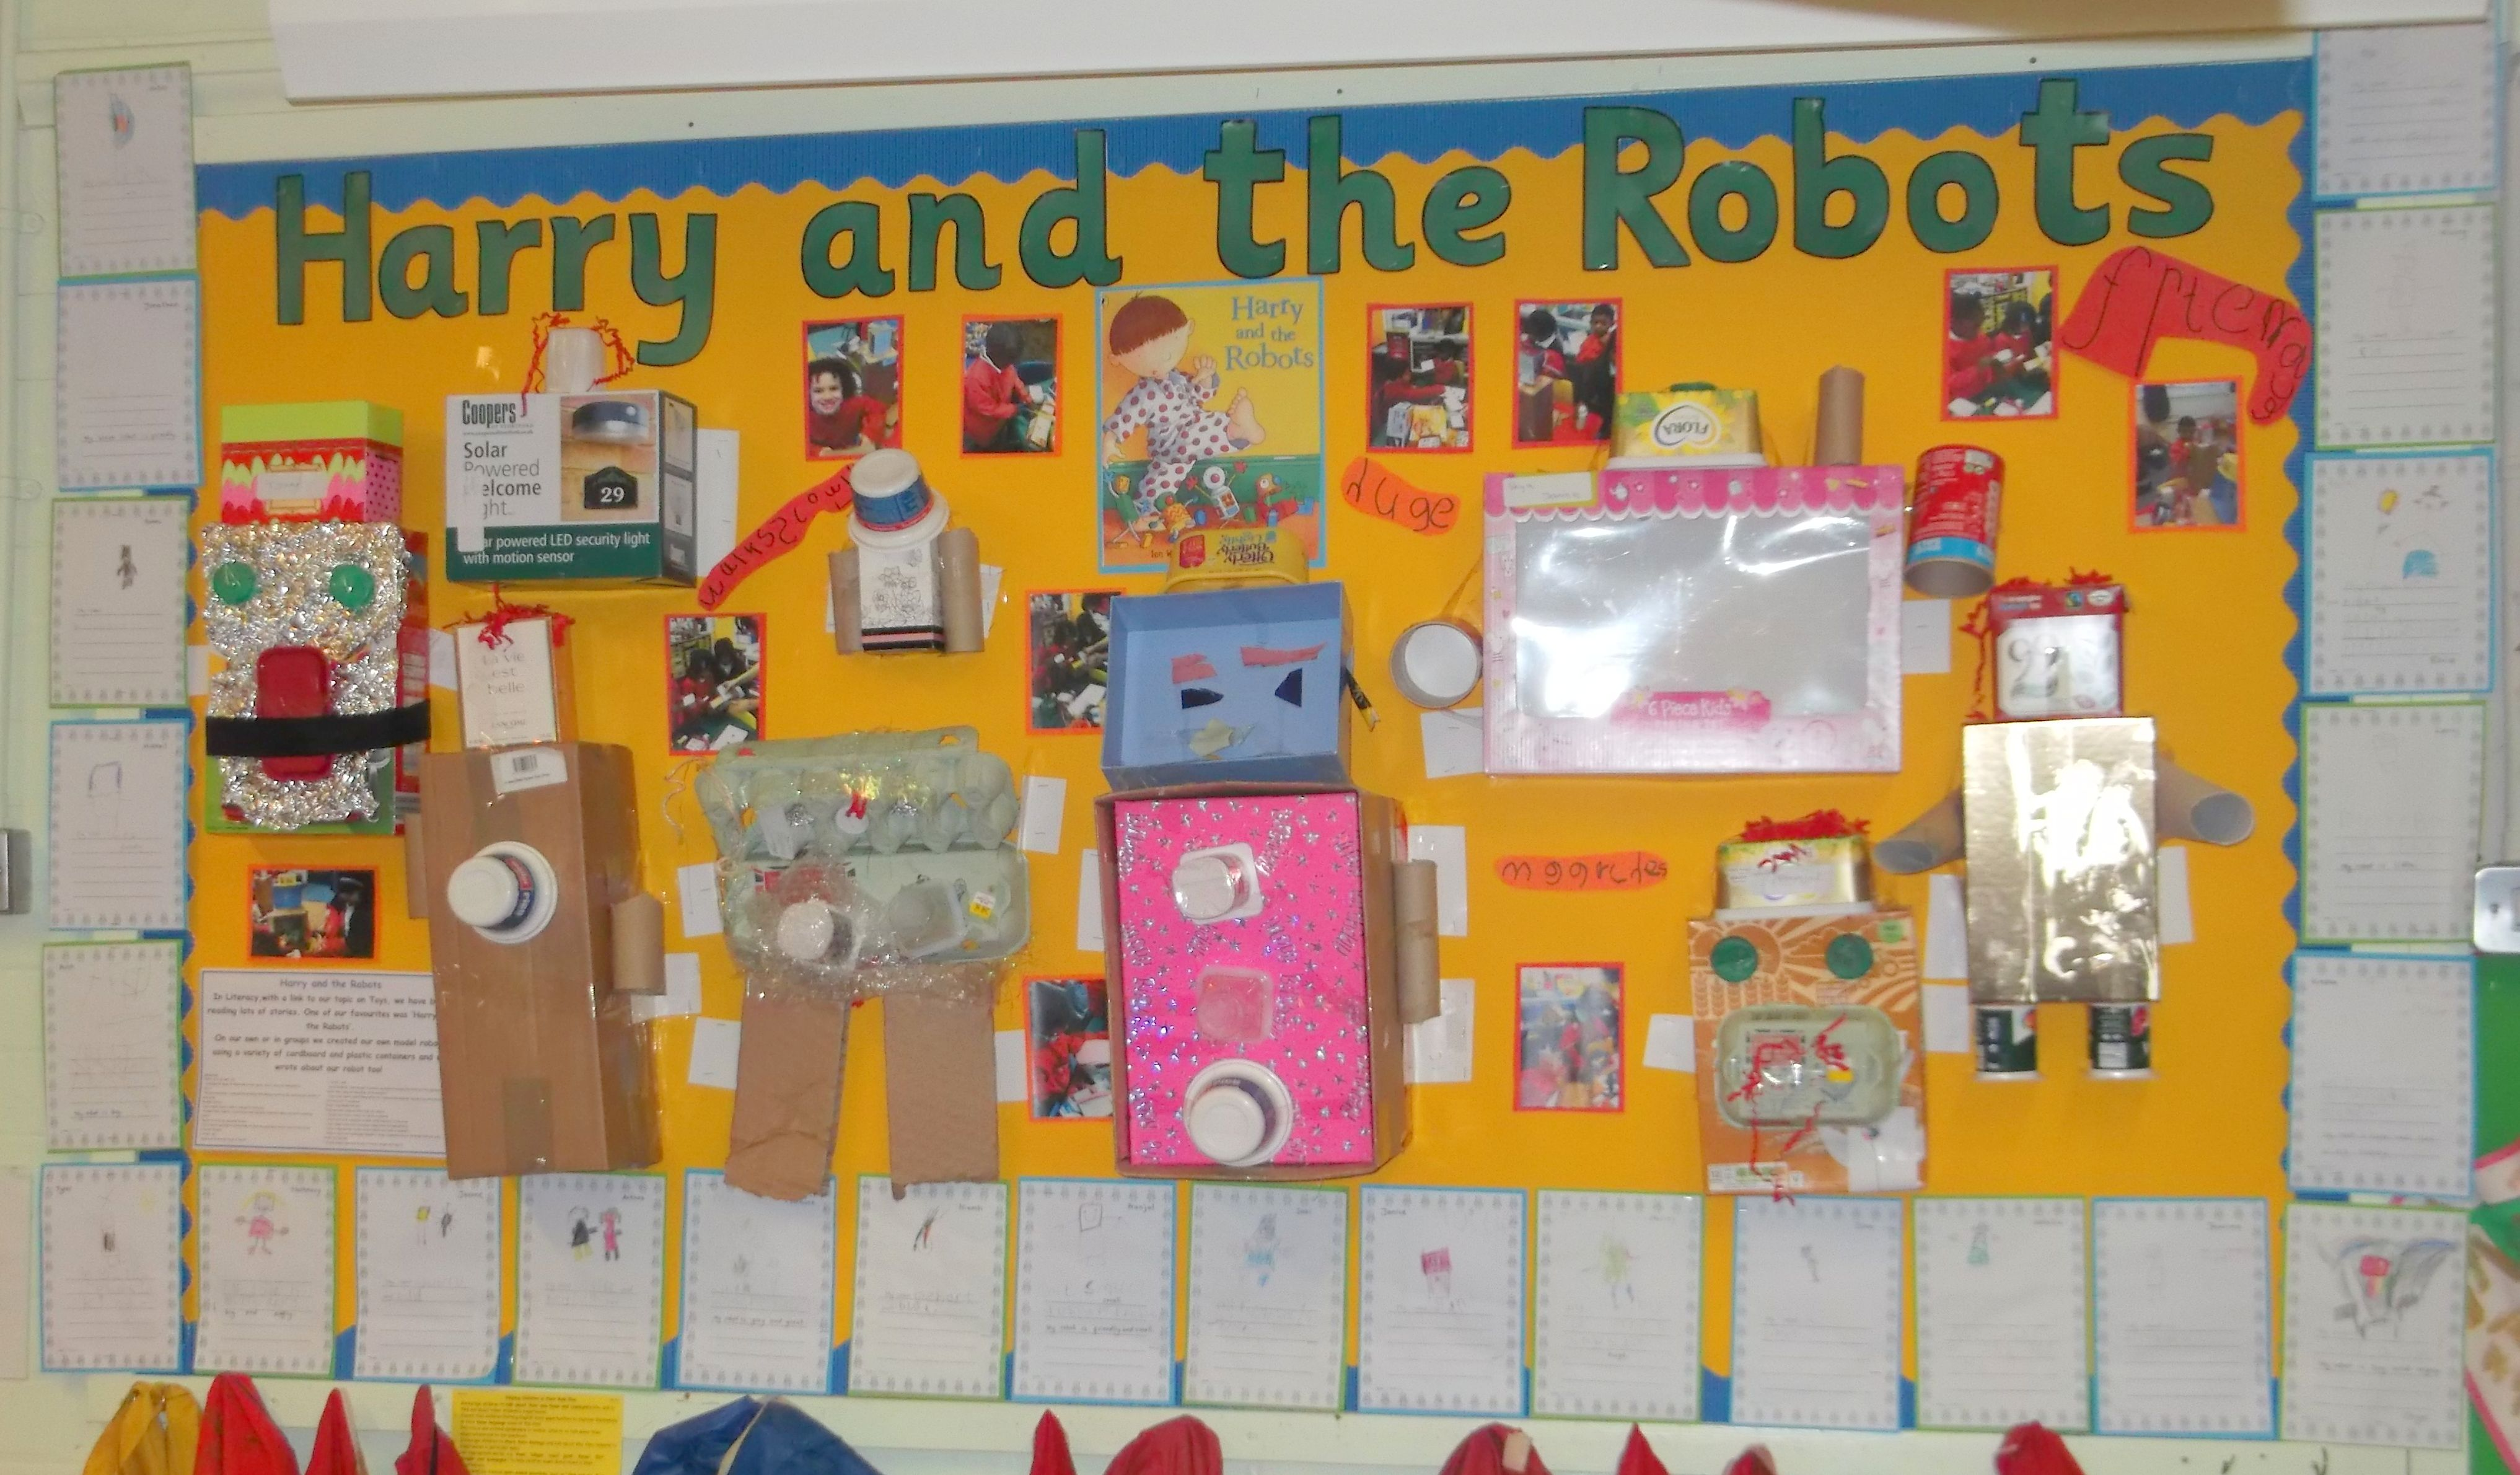 junk display modelling robots harry activities 3d eyfs classroom toys displays toy story books visit rockets science maths boys boxes